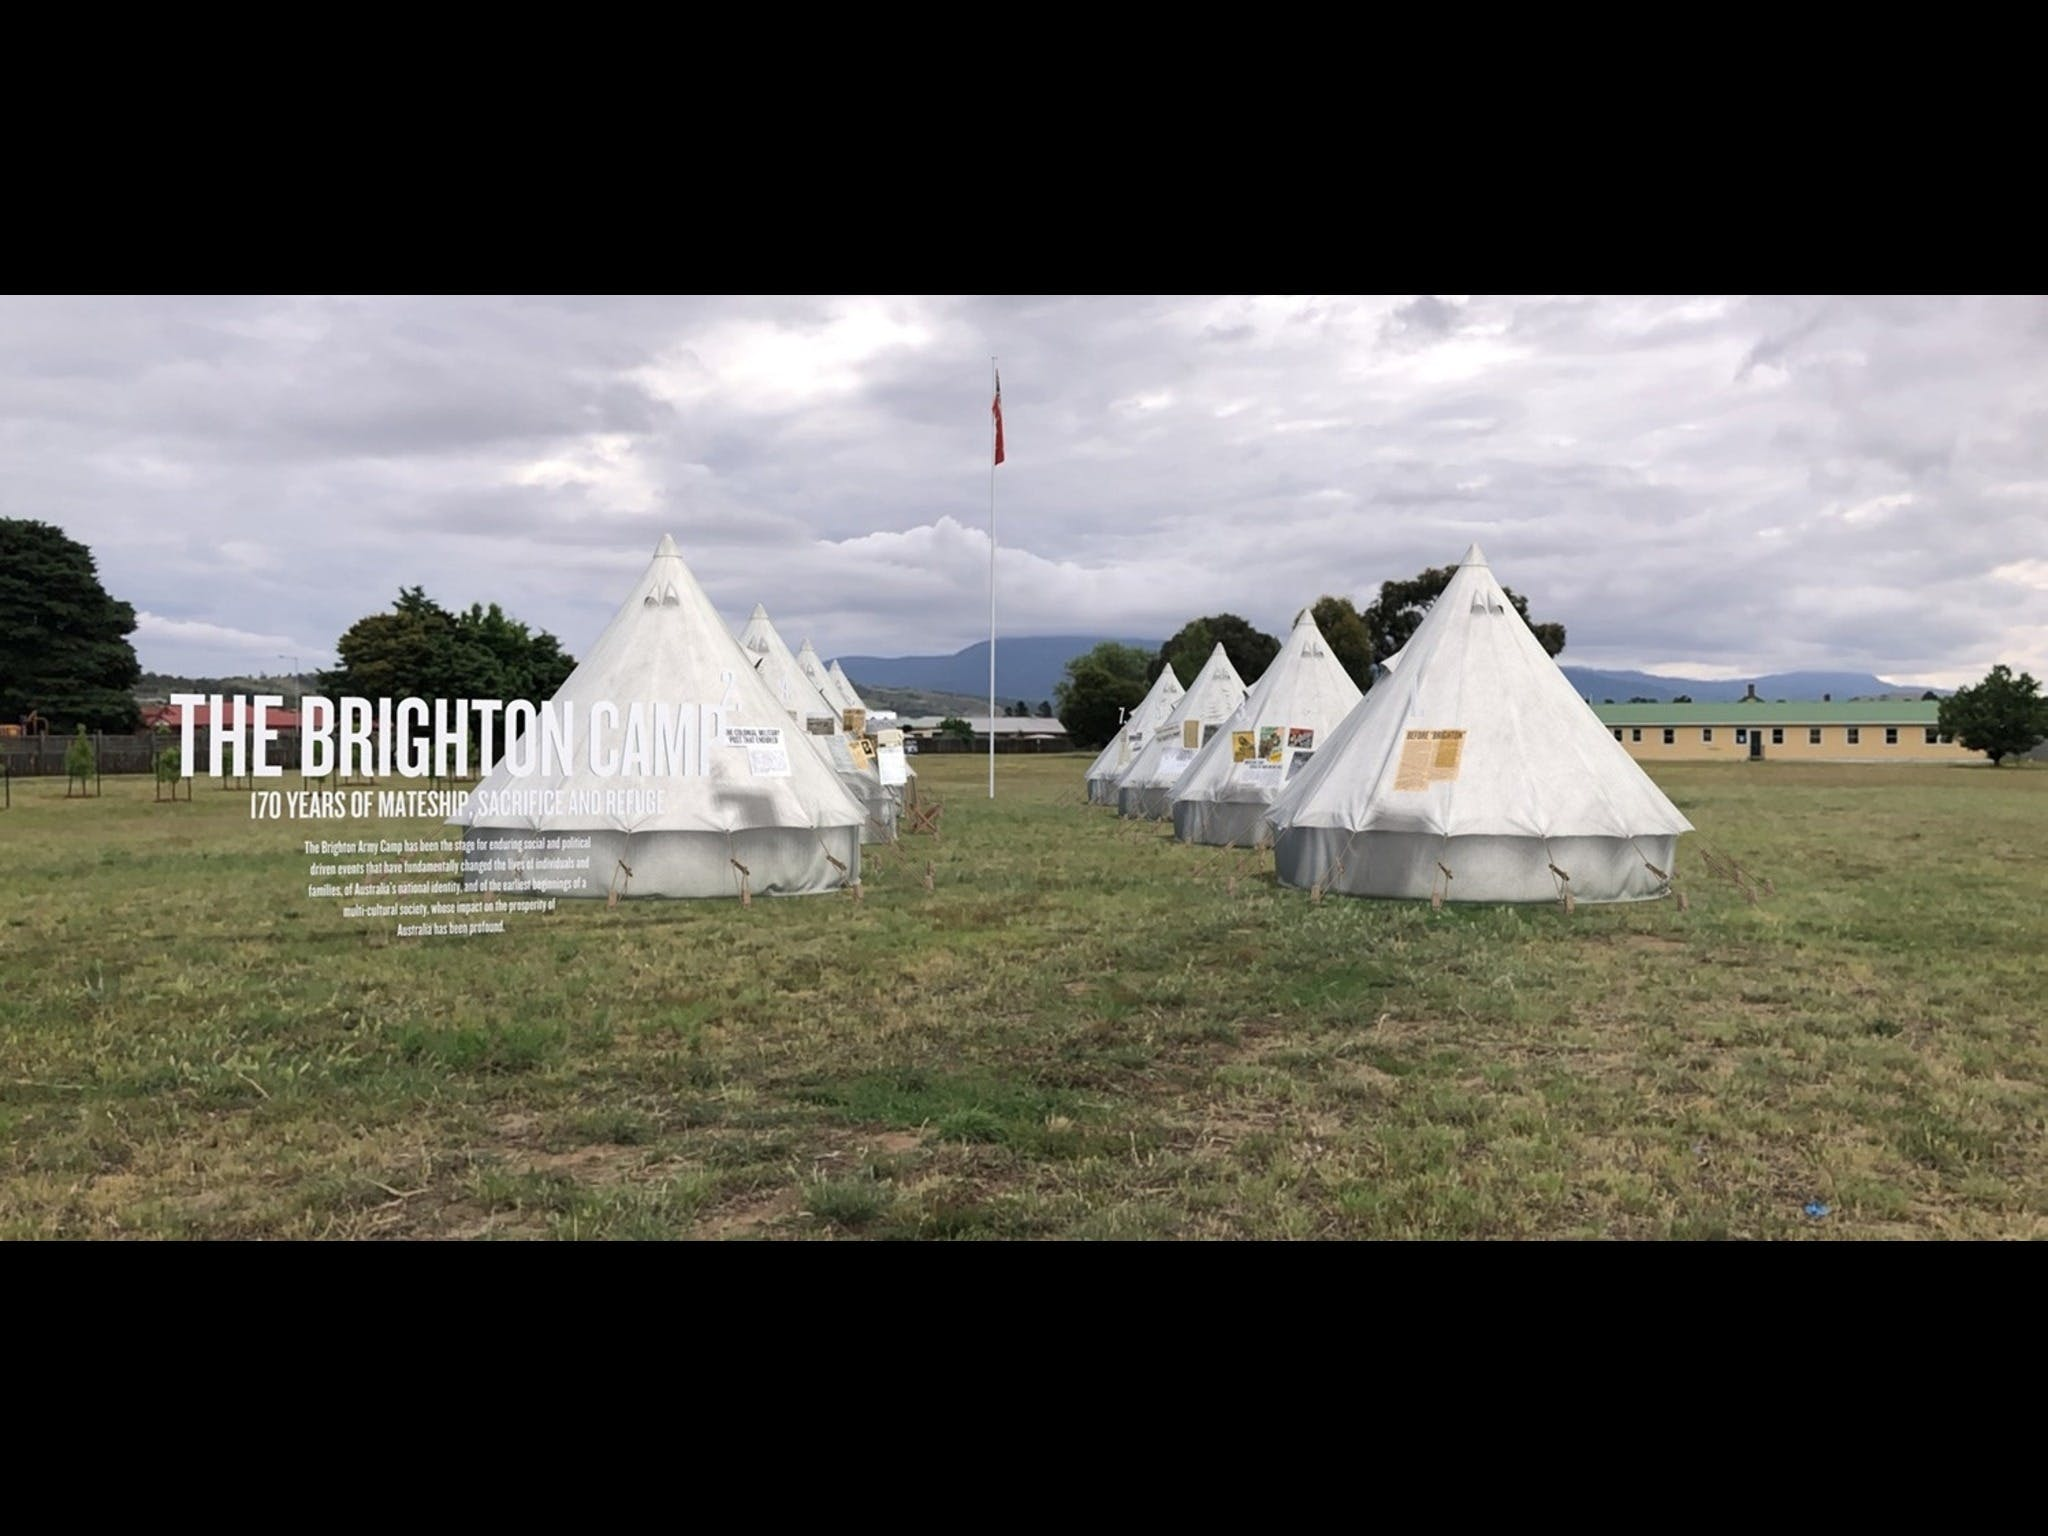 Brighton Army Camp - Accommodation Search